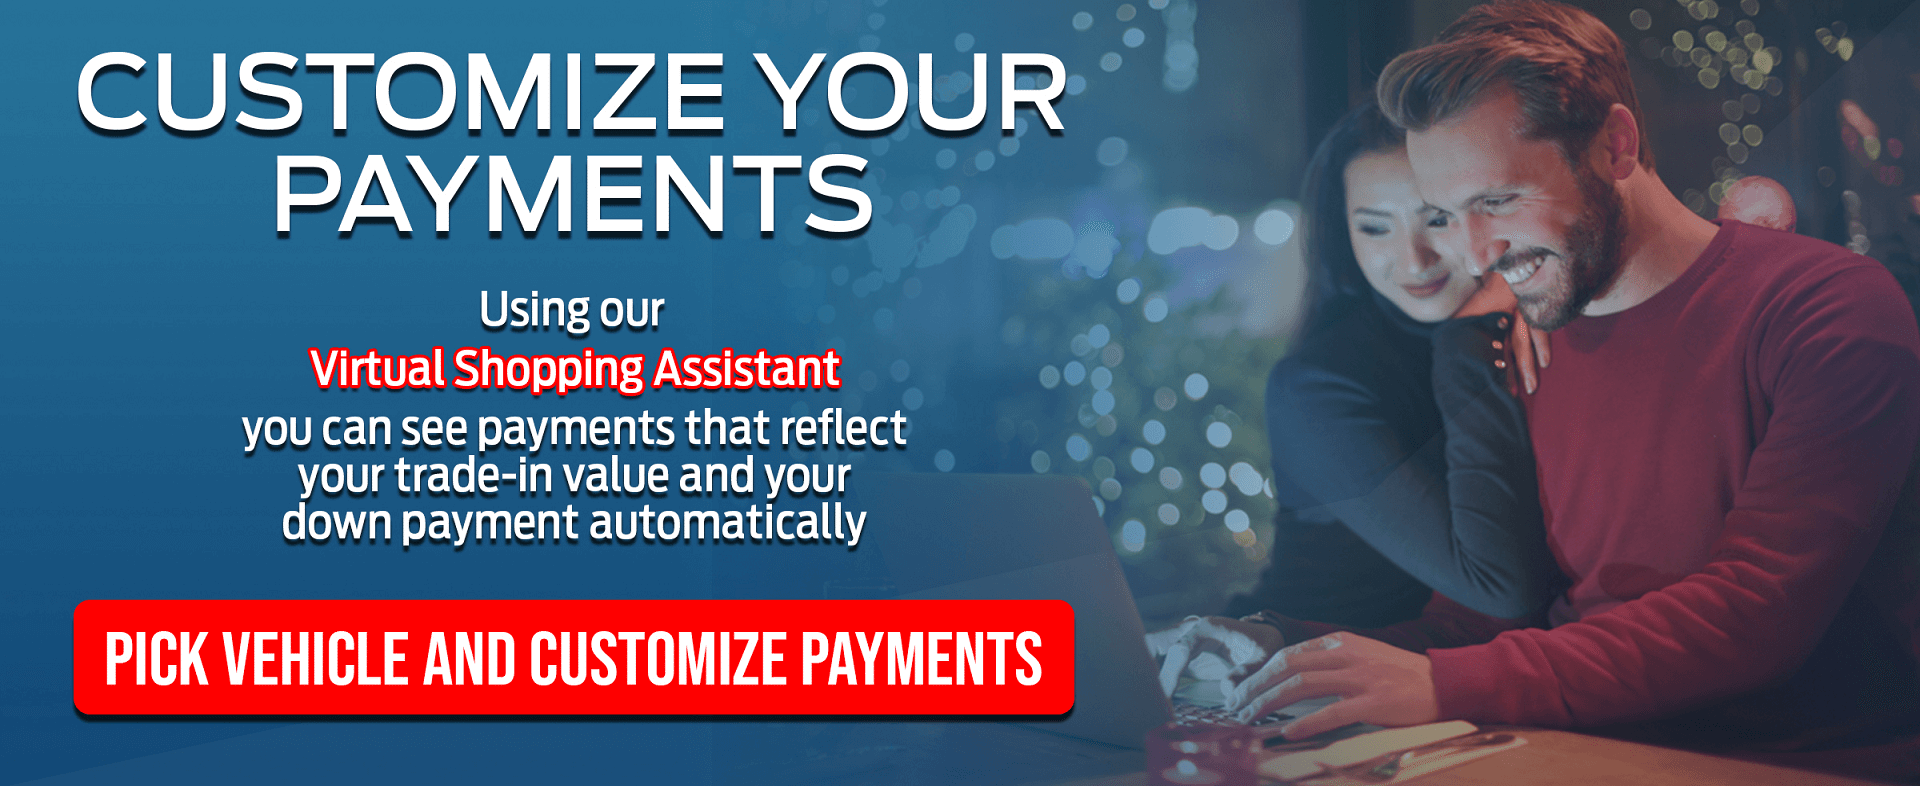 Customize Payment